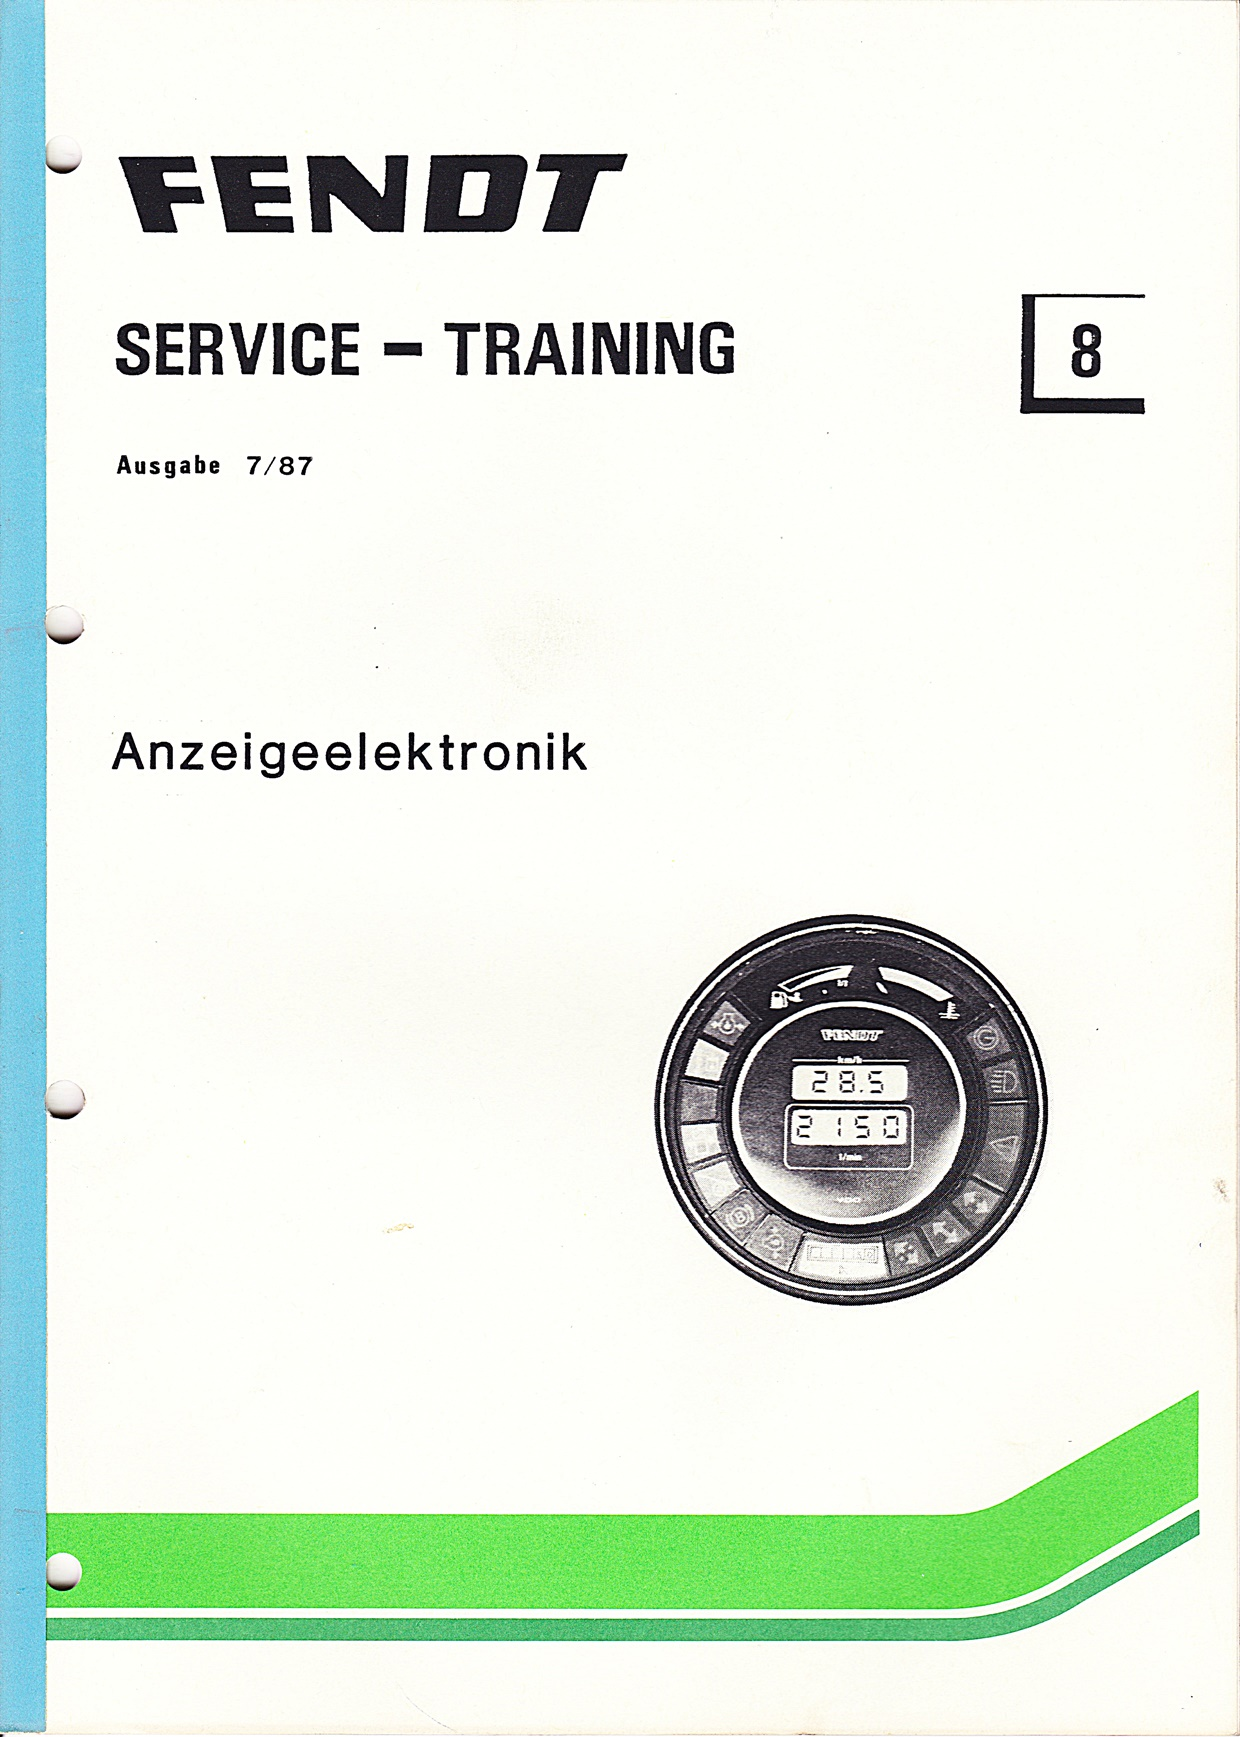 Fendt Service - Training Nr.8, Anzeigeelektronik